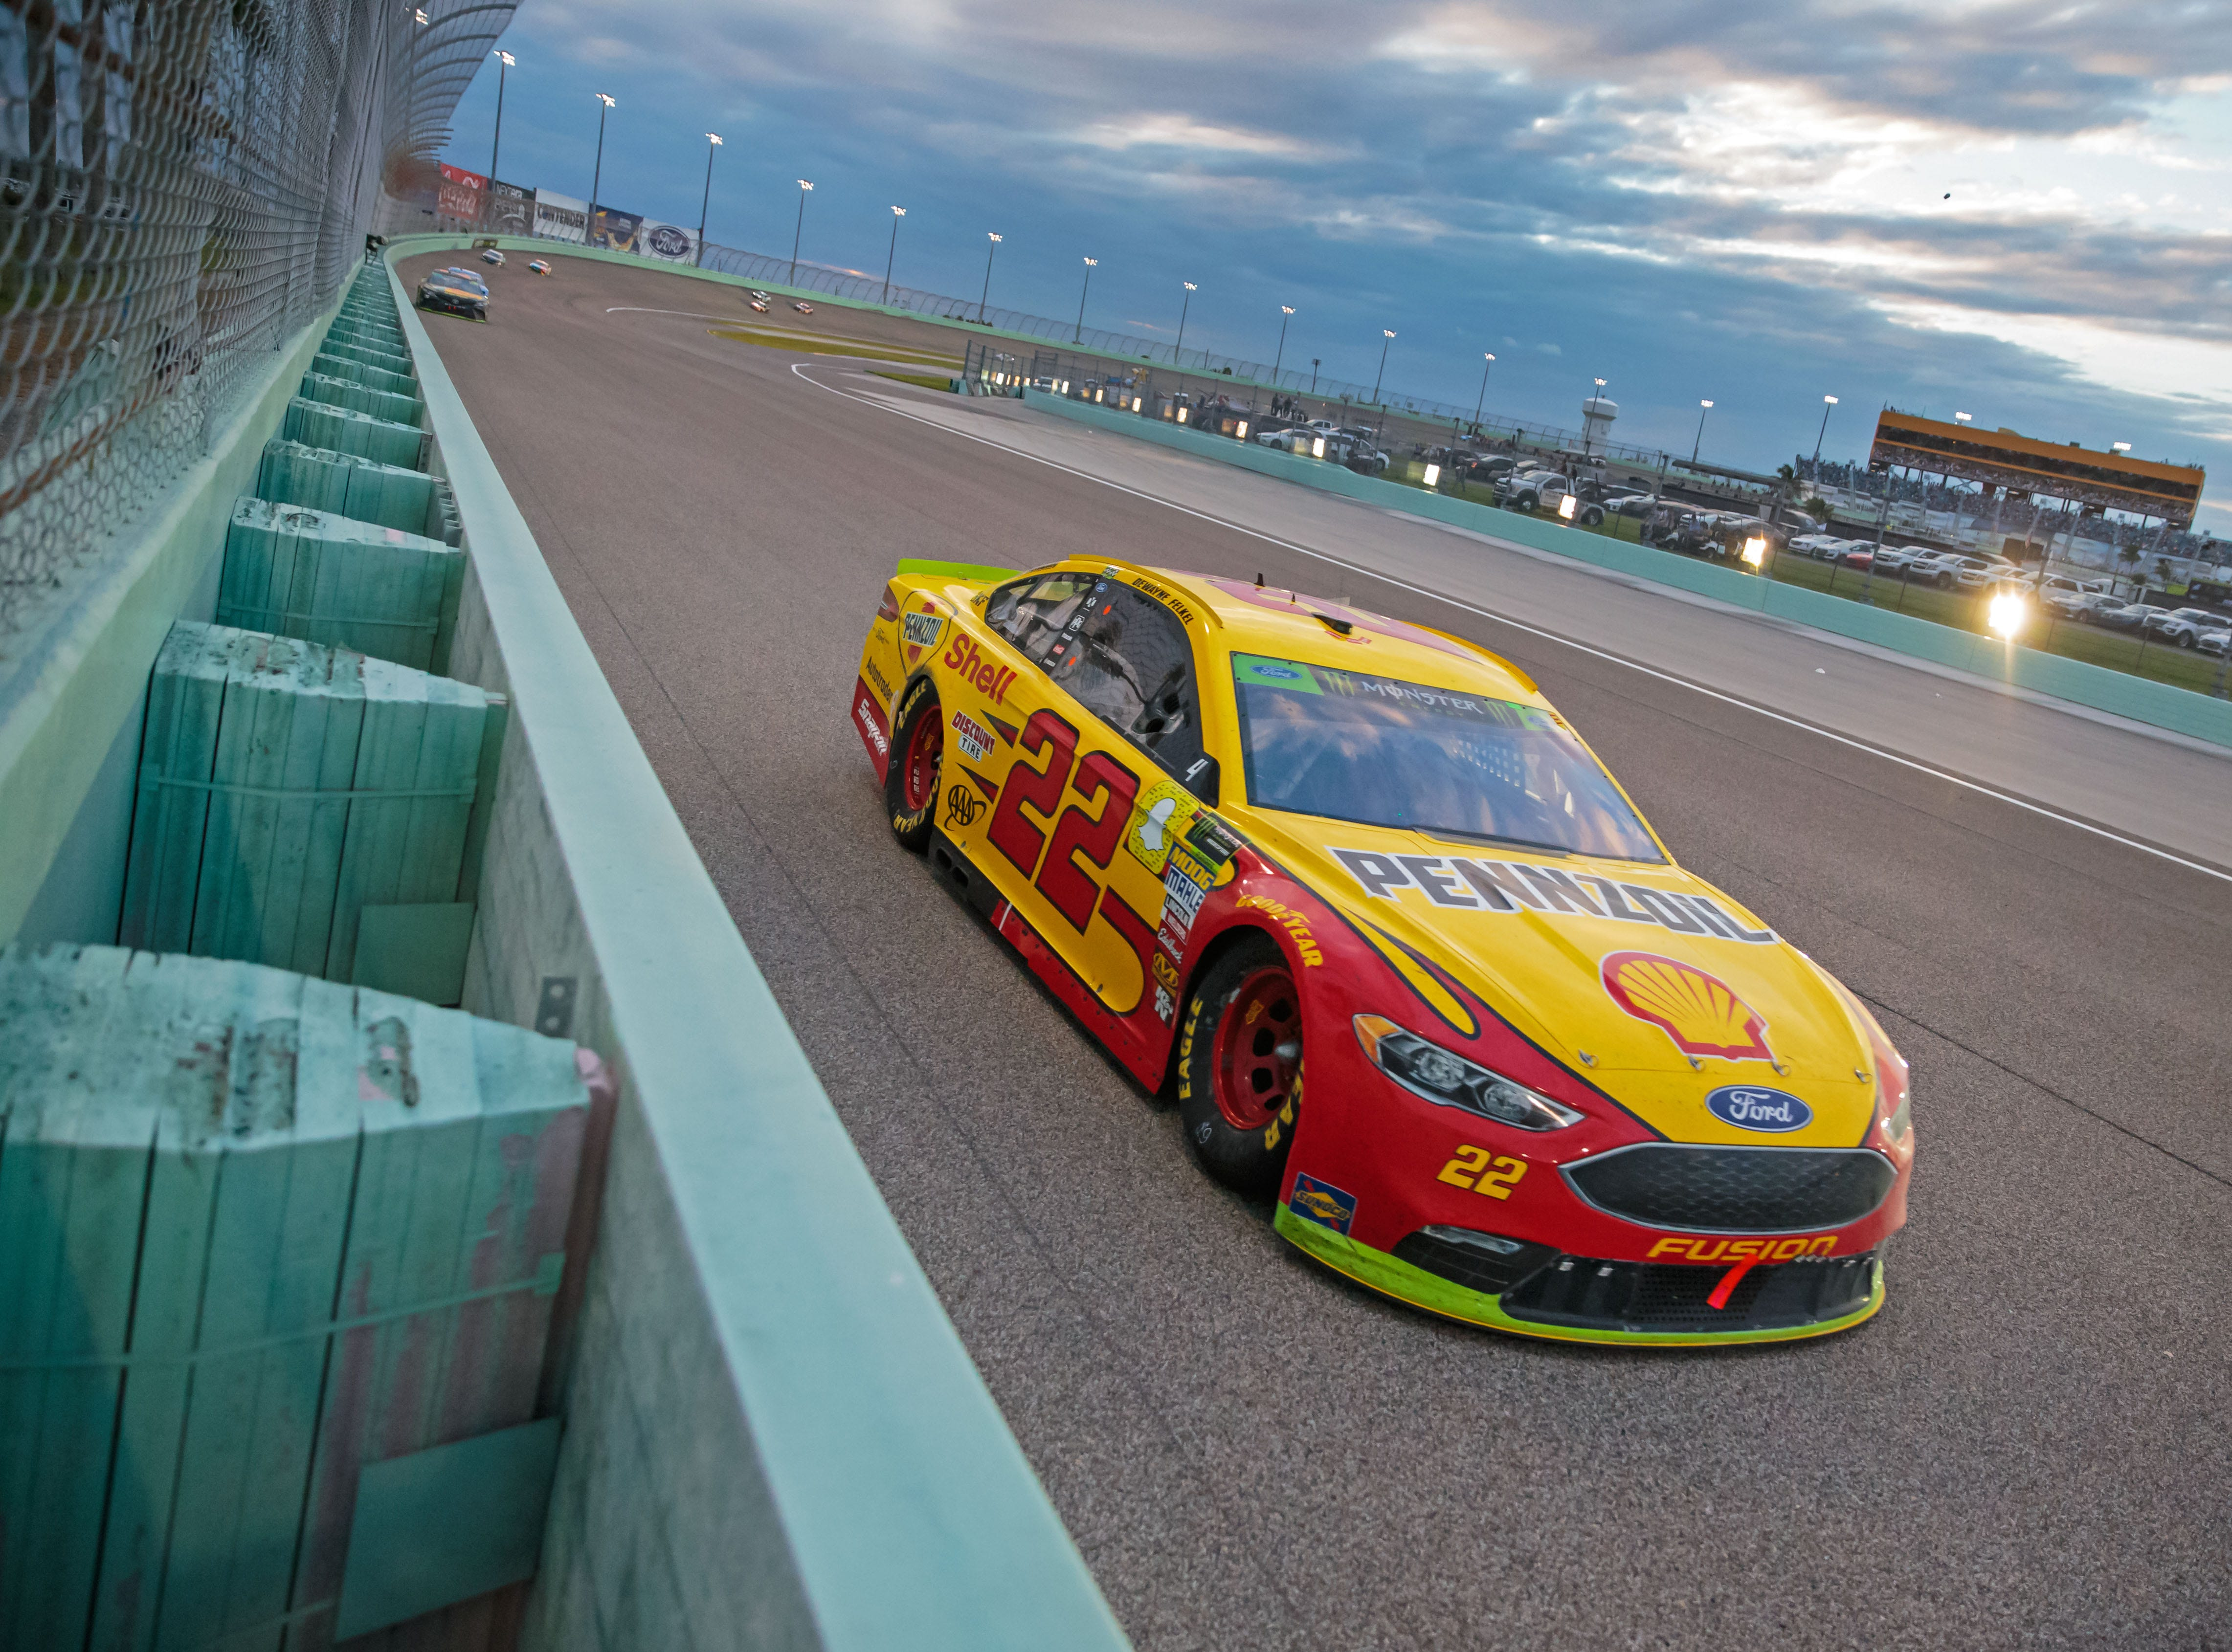 Joey Logano during the Ford EcoBoost 400 at Homestead-Miami Speedway.